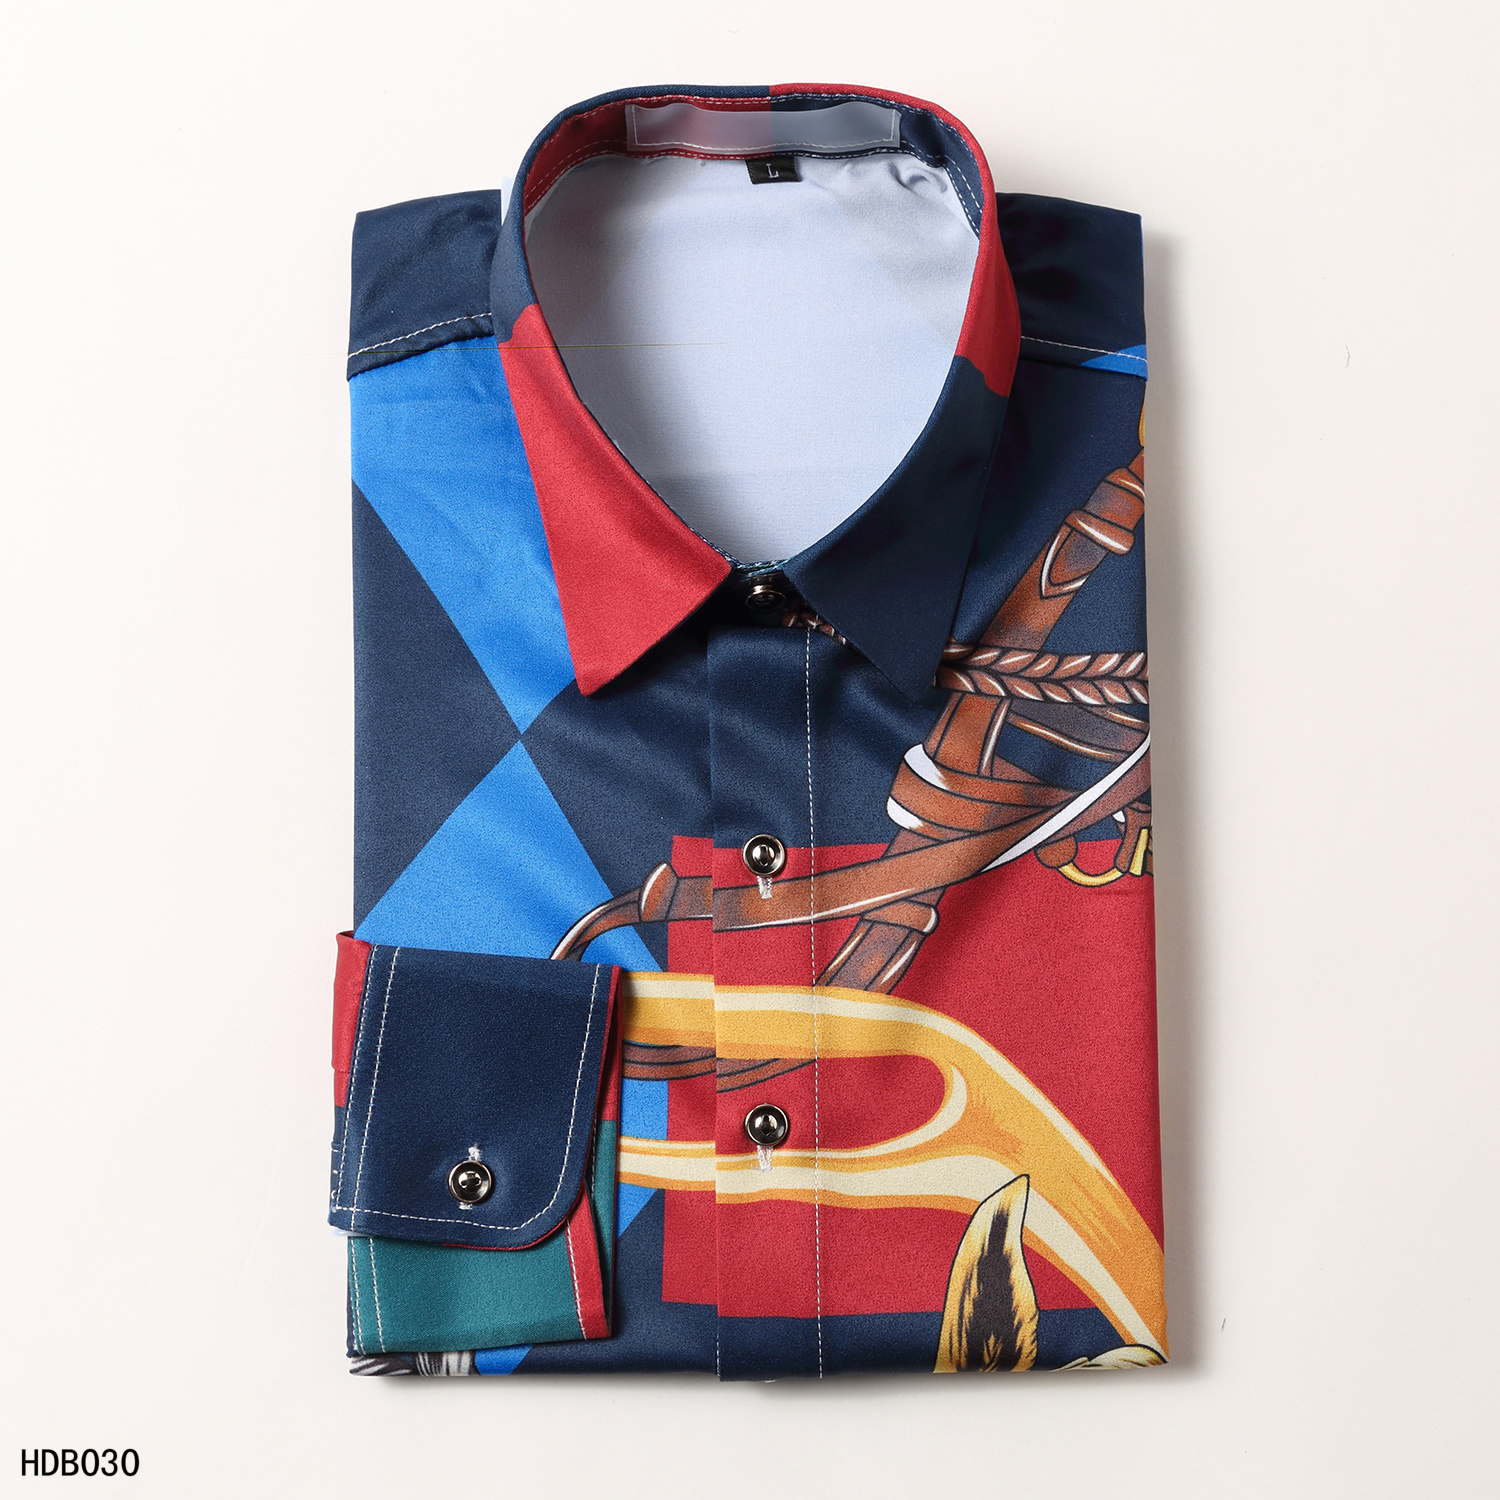 2020 Cheap Versace Long Sleeve Shirts For Men in 223846, cheap Versace Shirts, only $34!